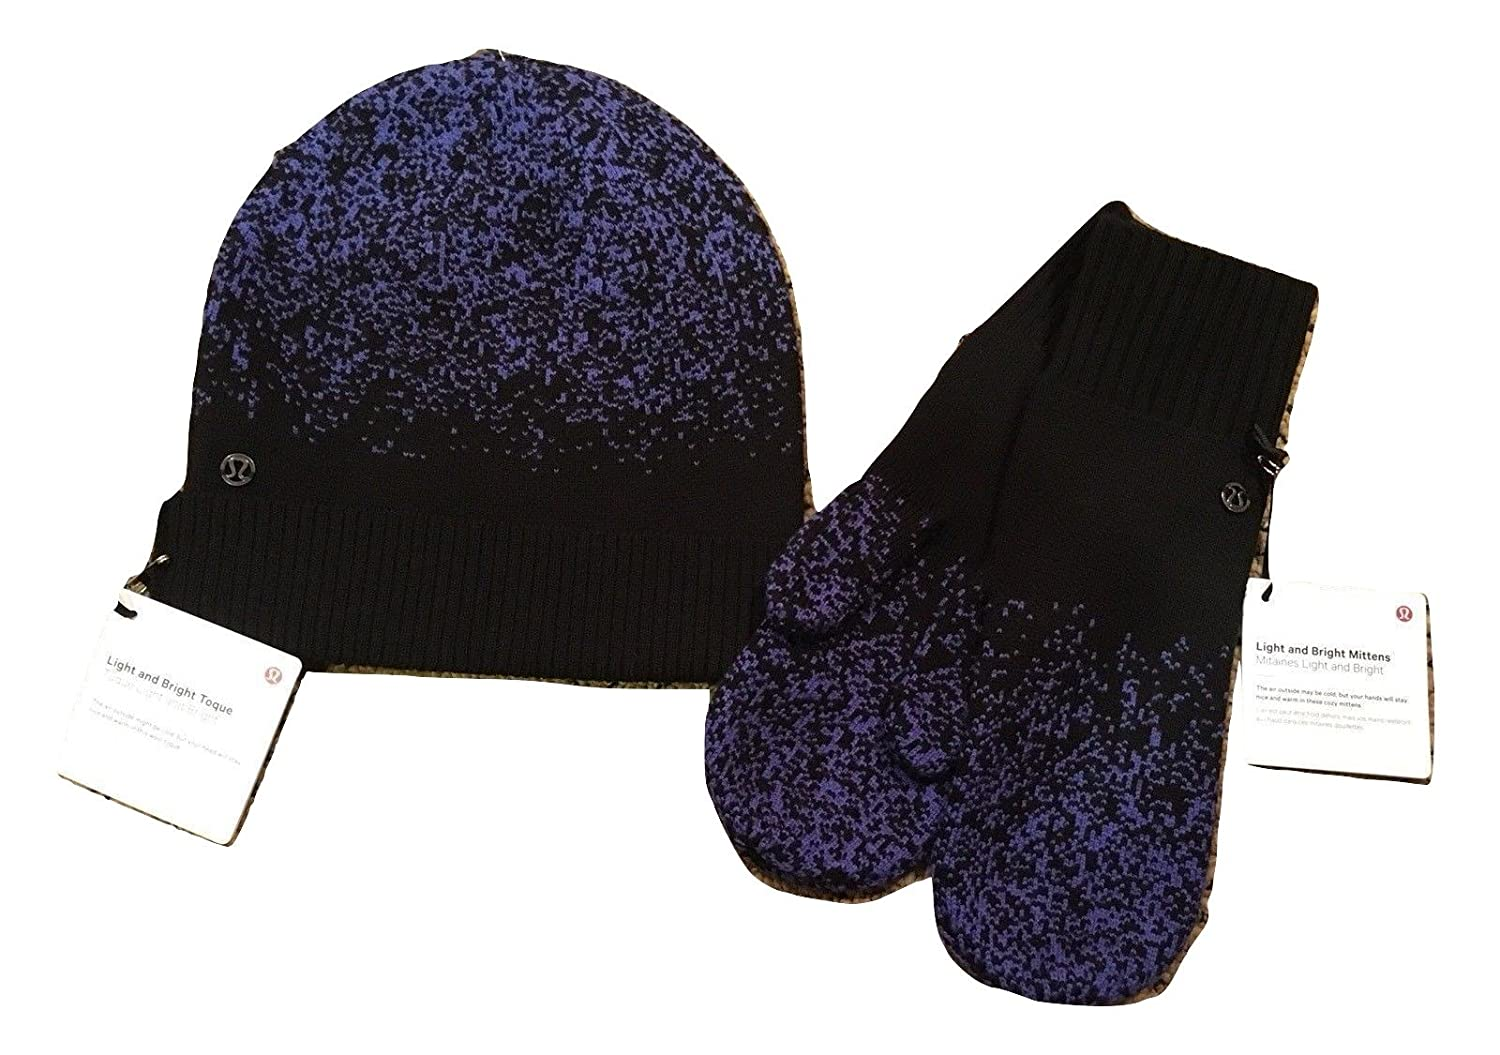 8498df0752b Lululemon light and bright mittens gloves toque set stardust blue merino  wool one size stay warm